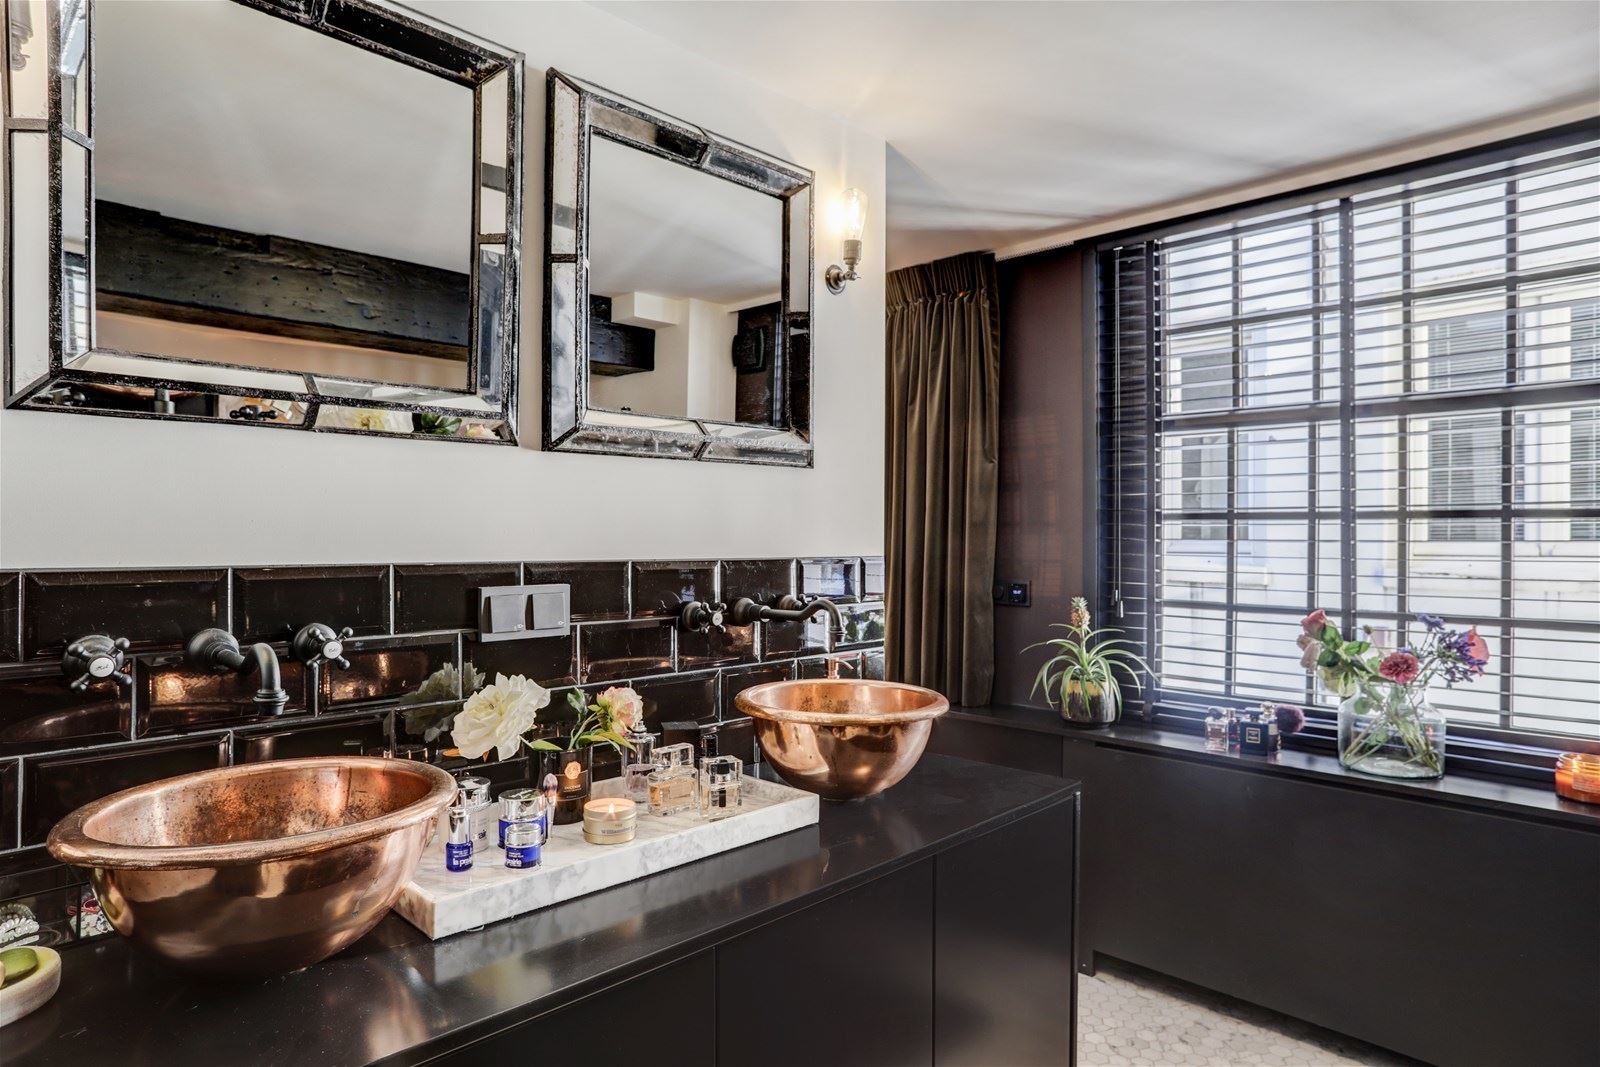 thenordroom-canalhomeamsterdam16.jpg